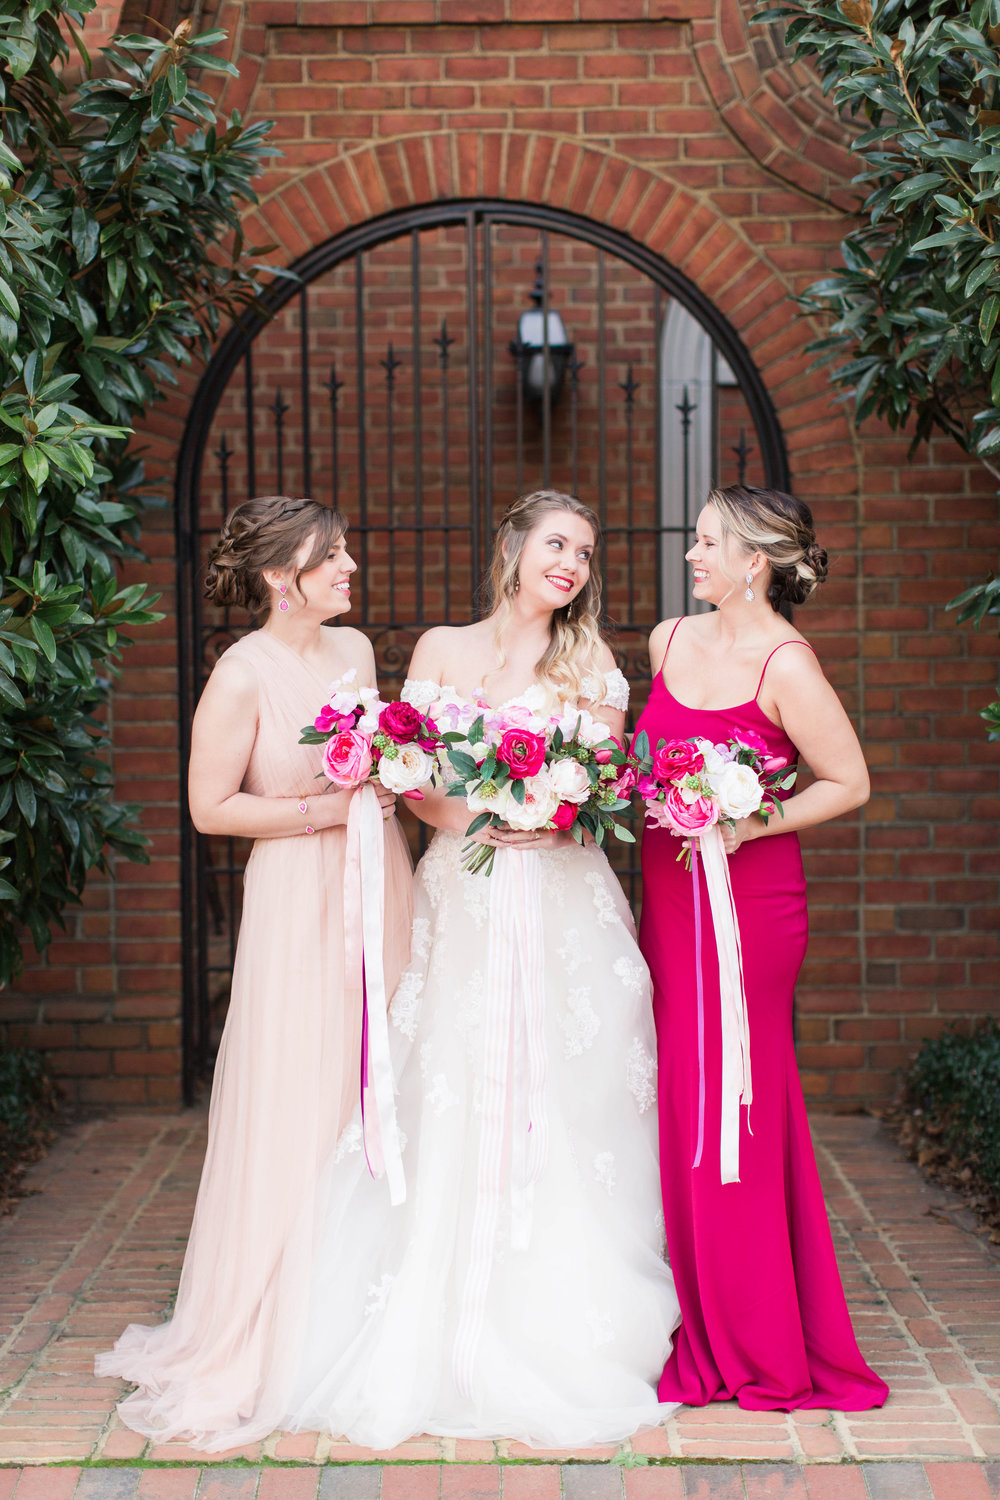 afloral-fake-flower-wedding-ivory-and-beau-bridal-boutique-maggie-sottero-saffron-the-hall-on-vine-wedding-statesboro-wedding-savannah-wedding-kristian-designs-rachel-strickland-photography-savannah-bridal-southern-bride-savannah-bride-5.jpg